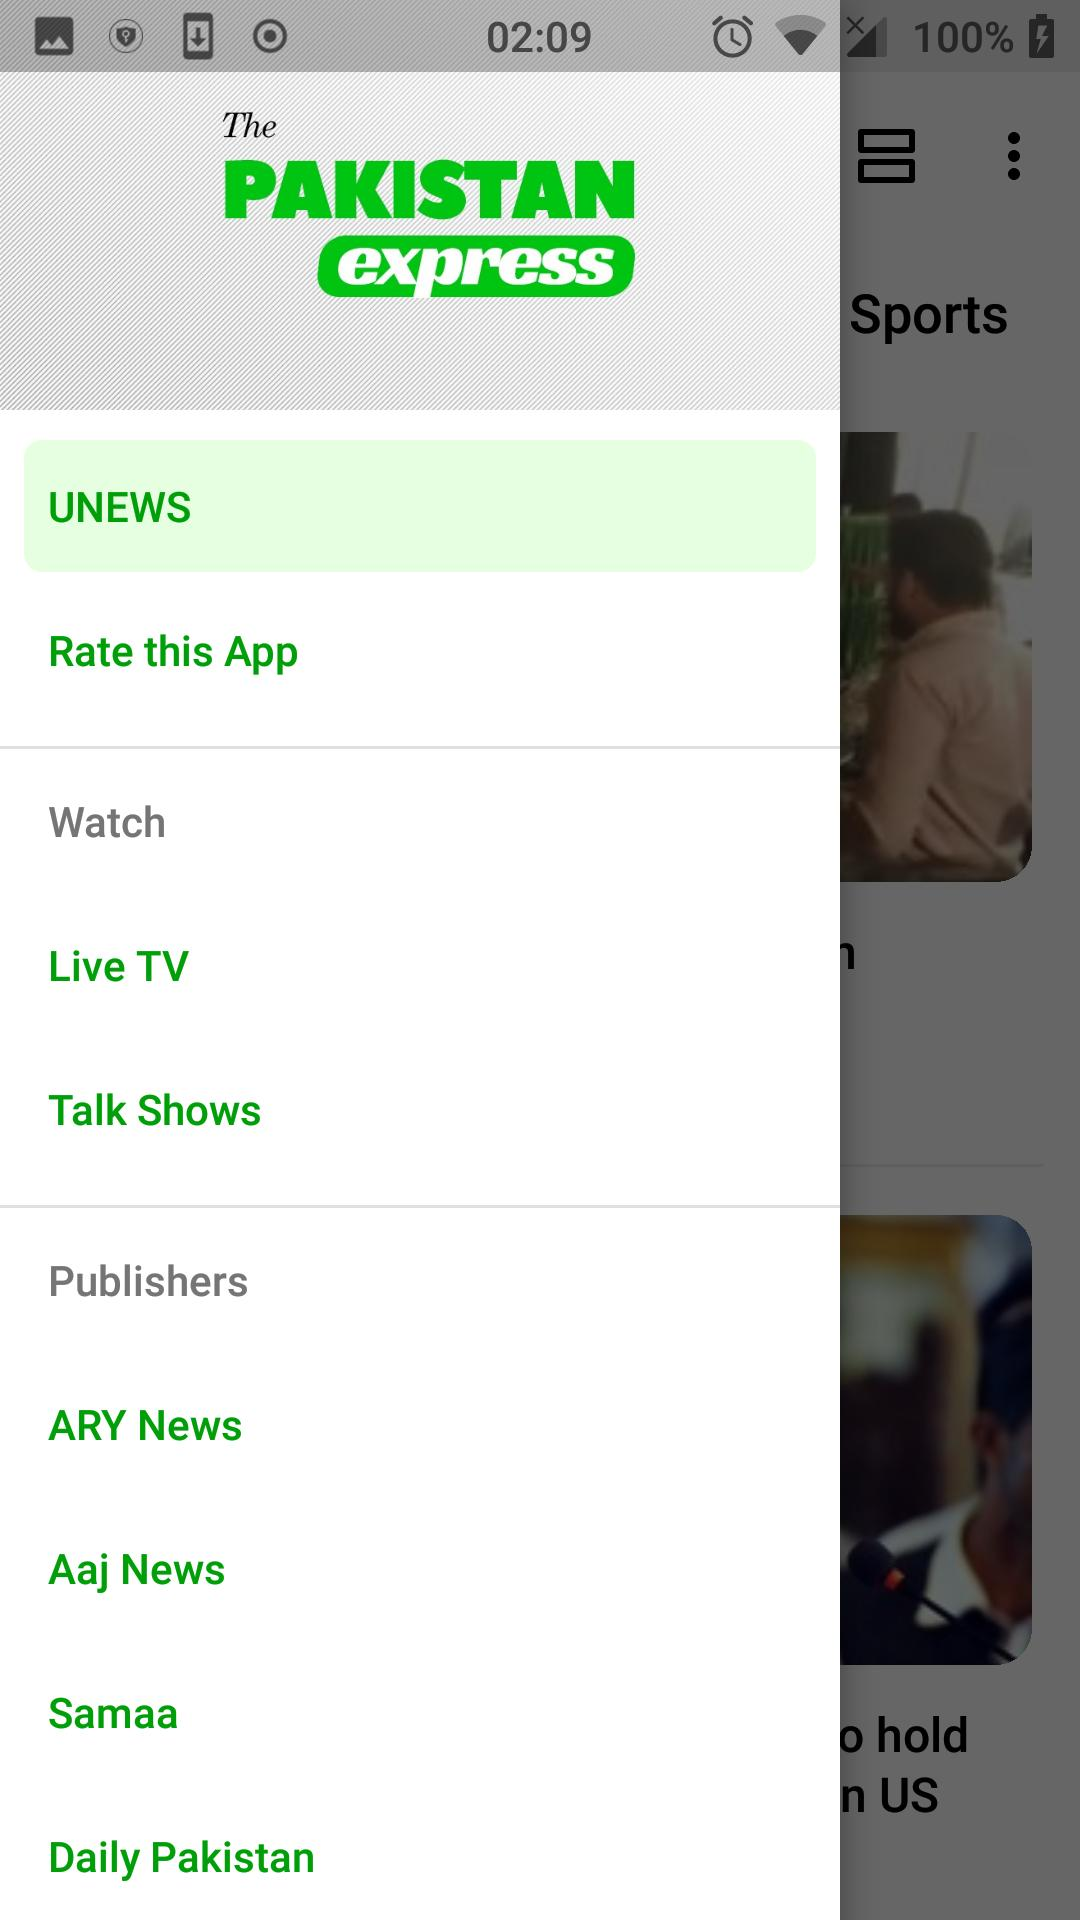 Pakistan News & Live TV - Pakistan Express for Android - APK Download